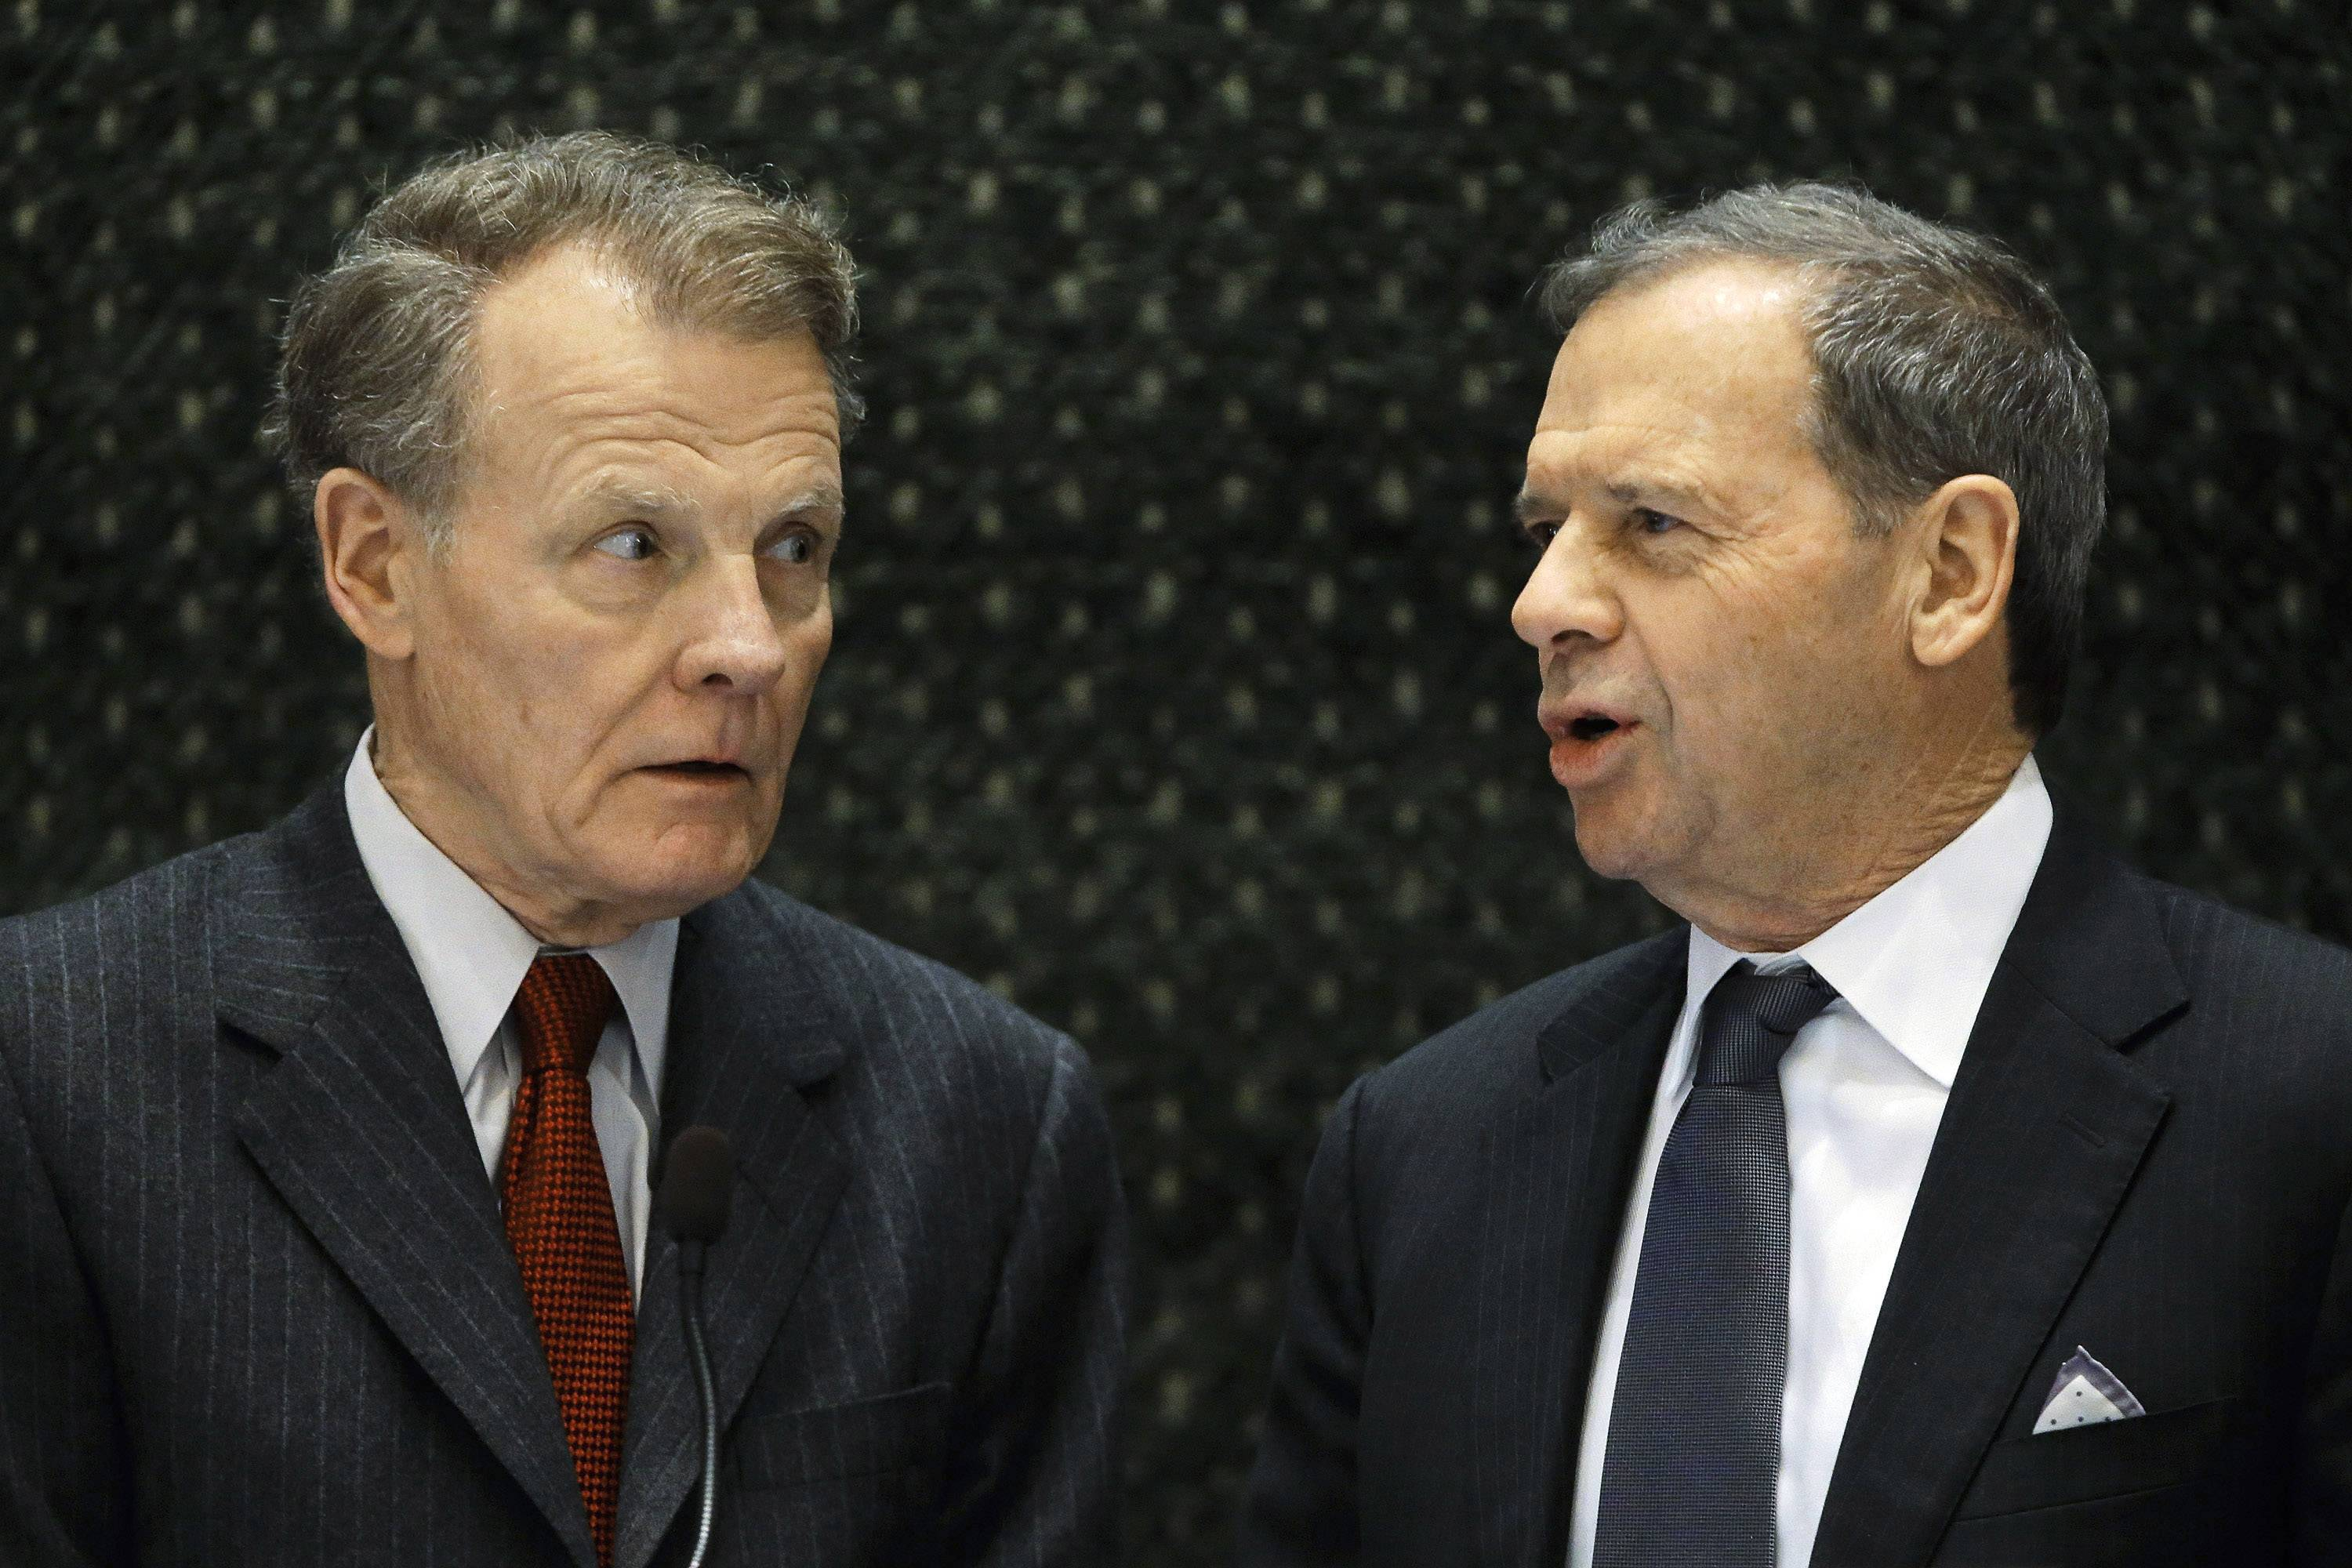 Illinois House Speaker Michael Madigan, D-Chicago, left, and Senate President John Cullerton, D-Chicago, talk before Illinois Republican Gov. Bruce Rauner delivers his budget address to the General Assembly in Springfield.